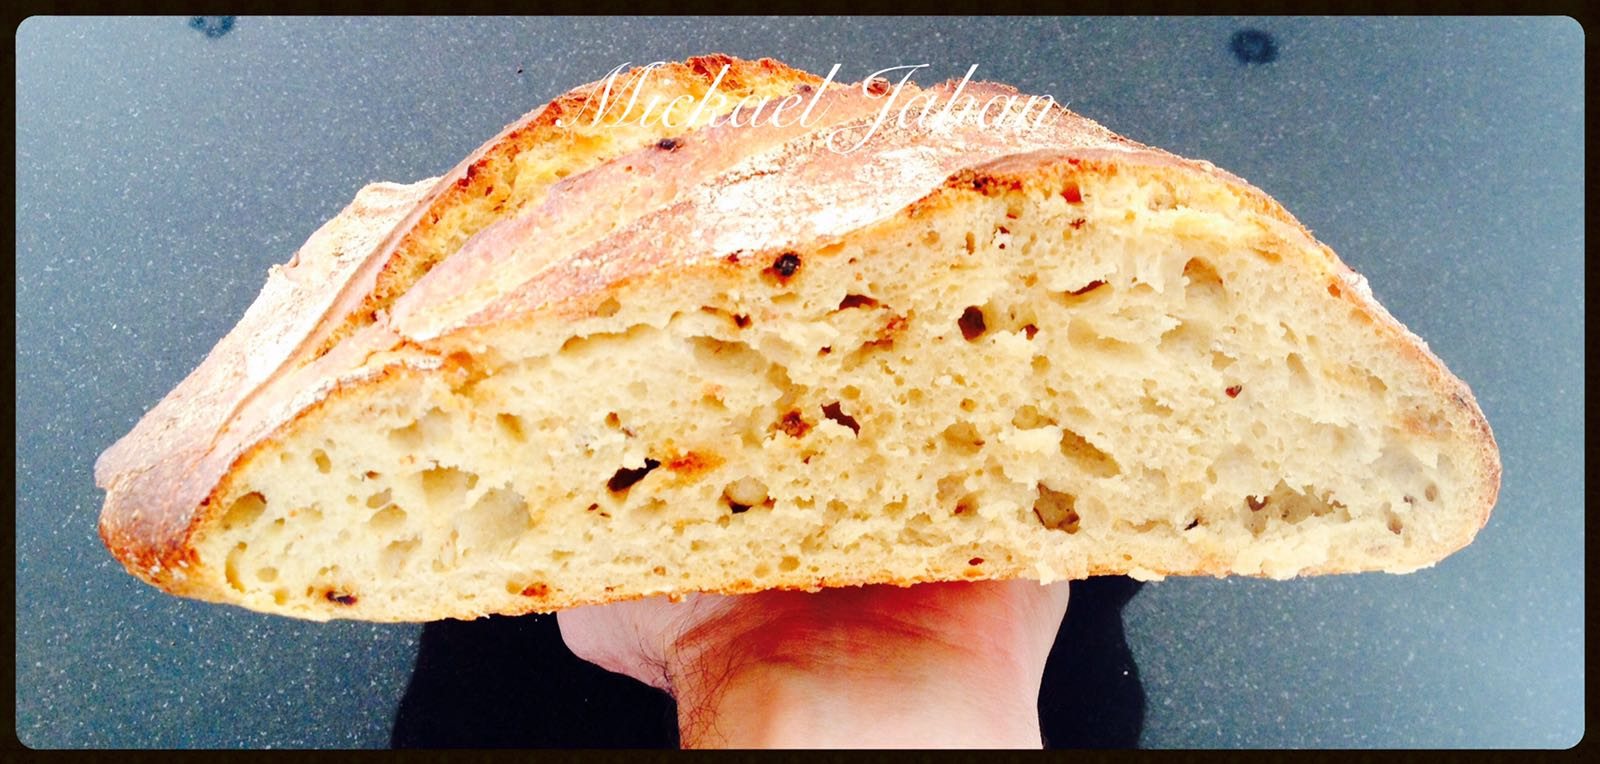 Under-mixed bread to preserve all the flavour from this fantastic flour